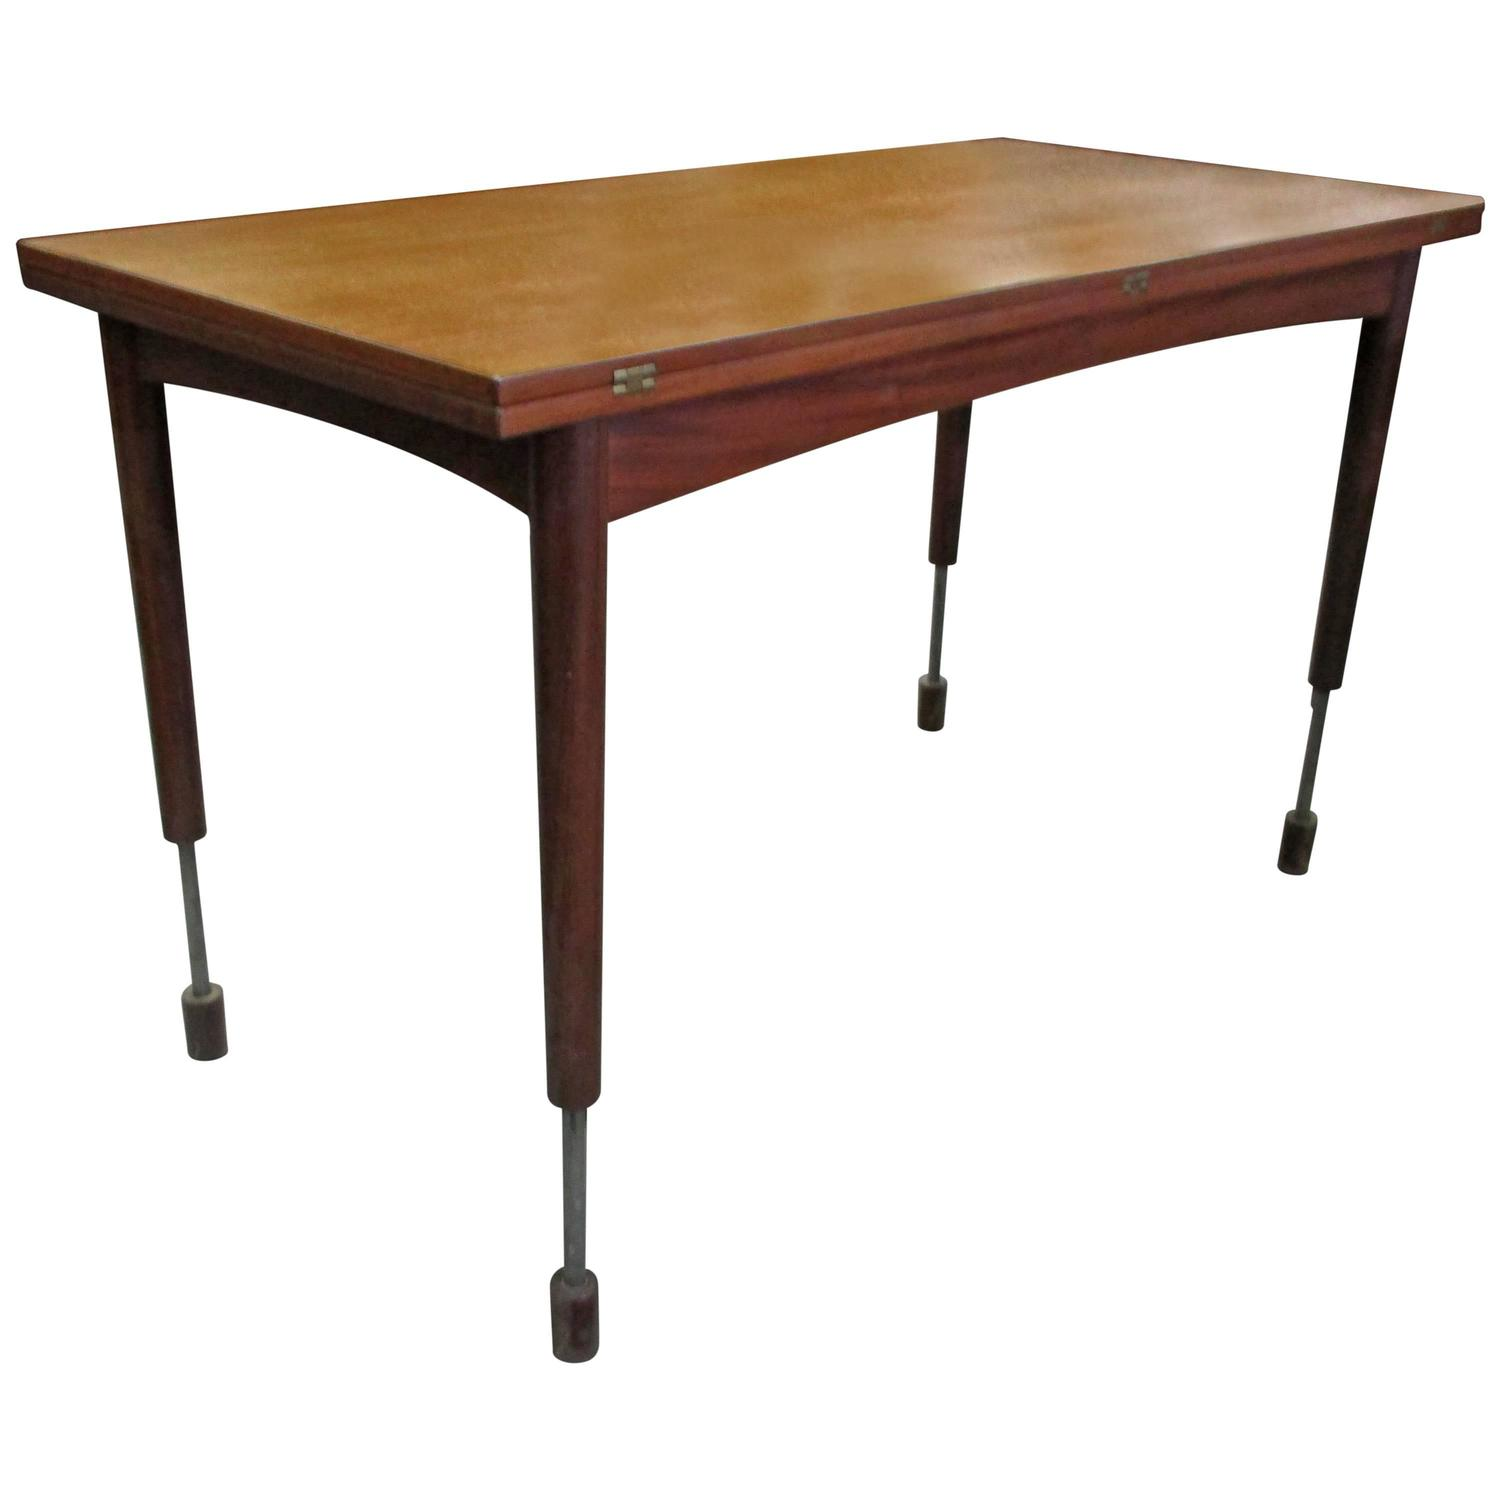 Hans Olsen Coffee Table Converts To Dining Table For Sale At 1stdibs: coffee table dining